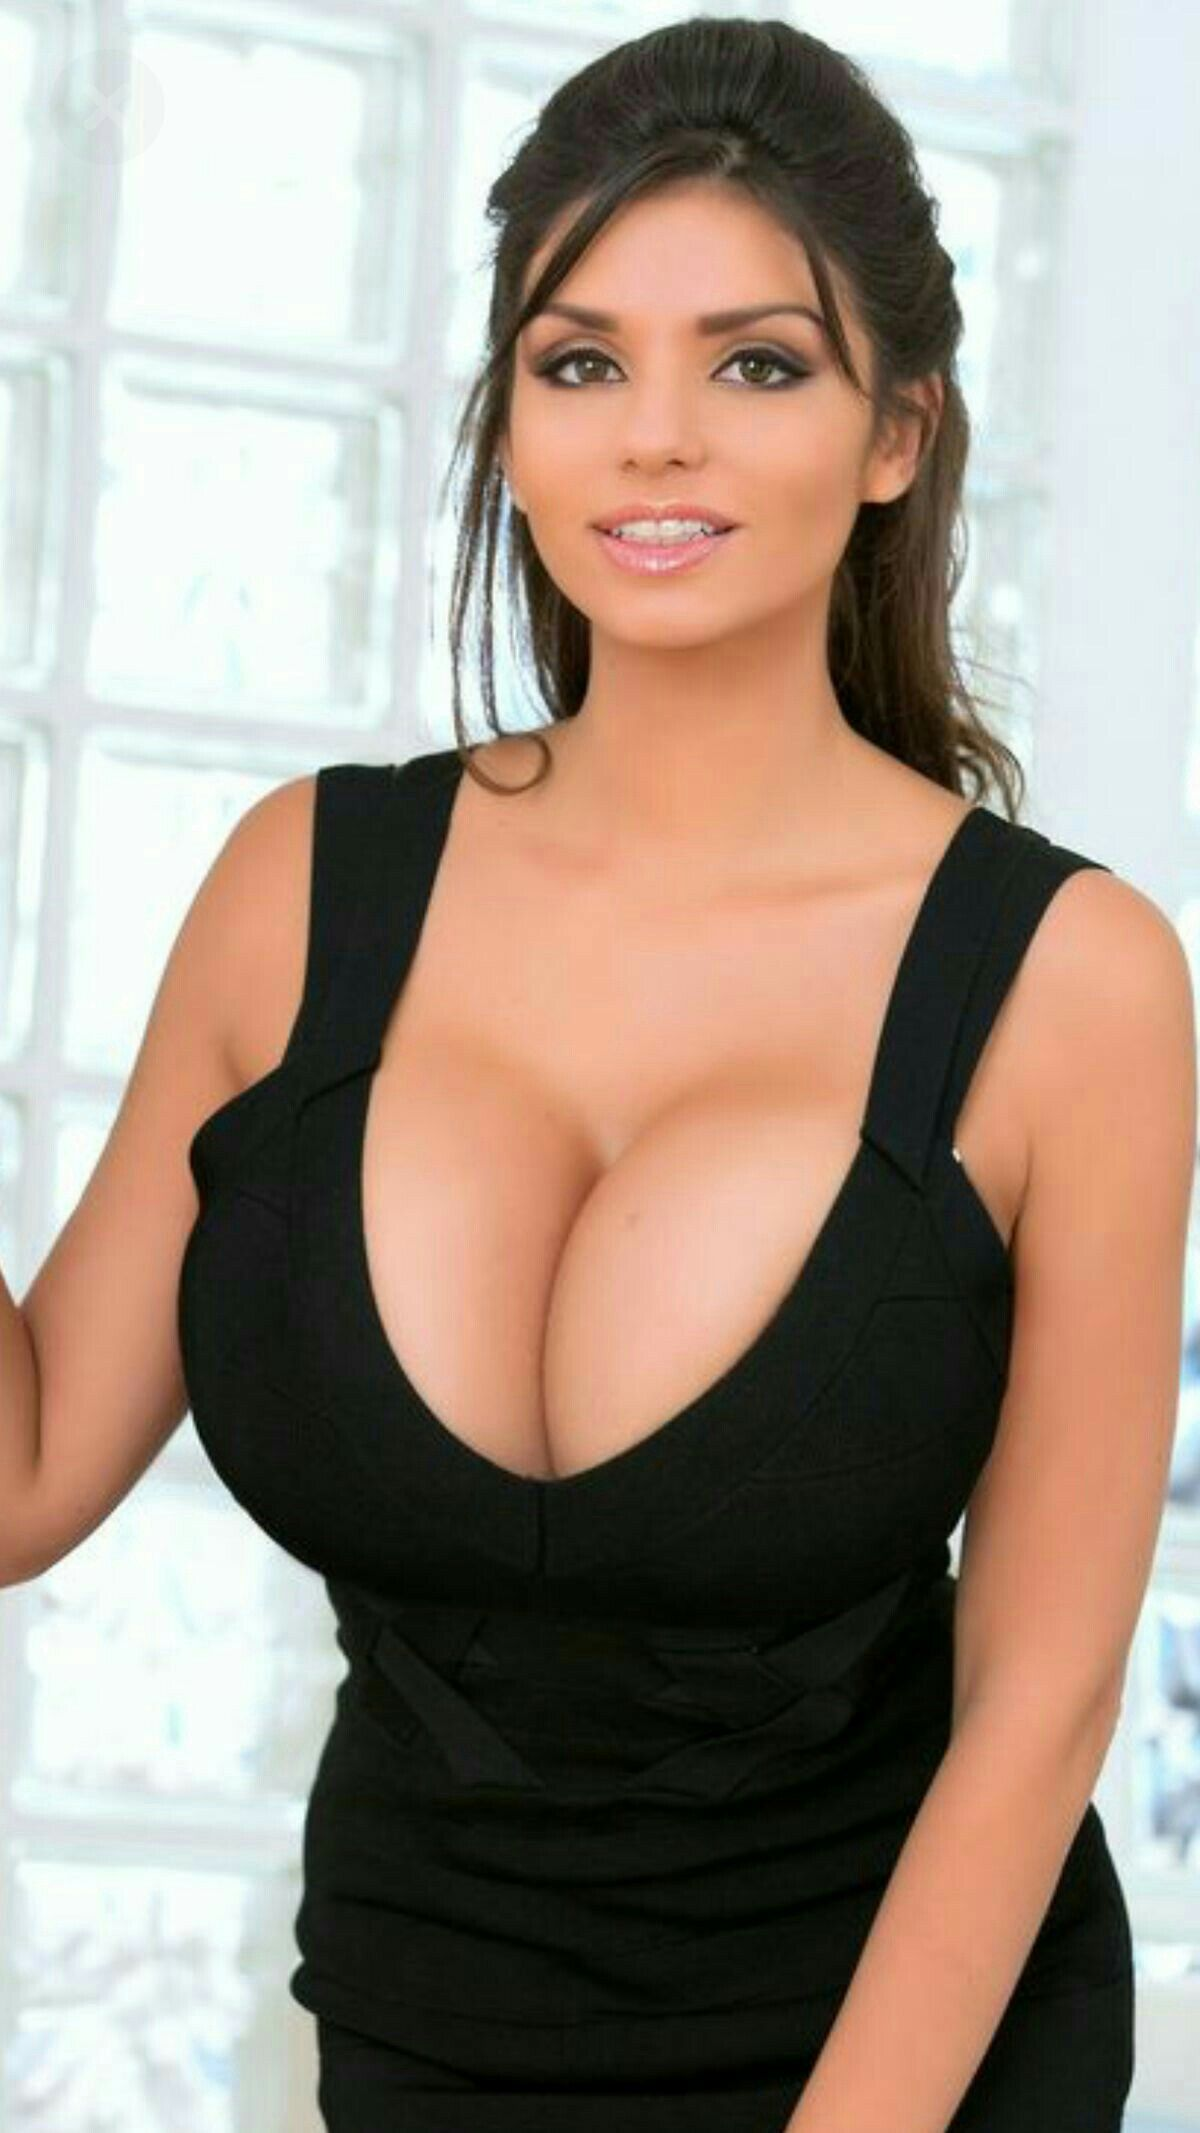 Huge Boobs low cut black dress